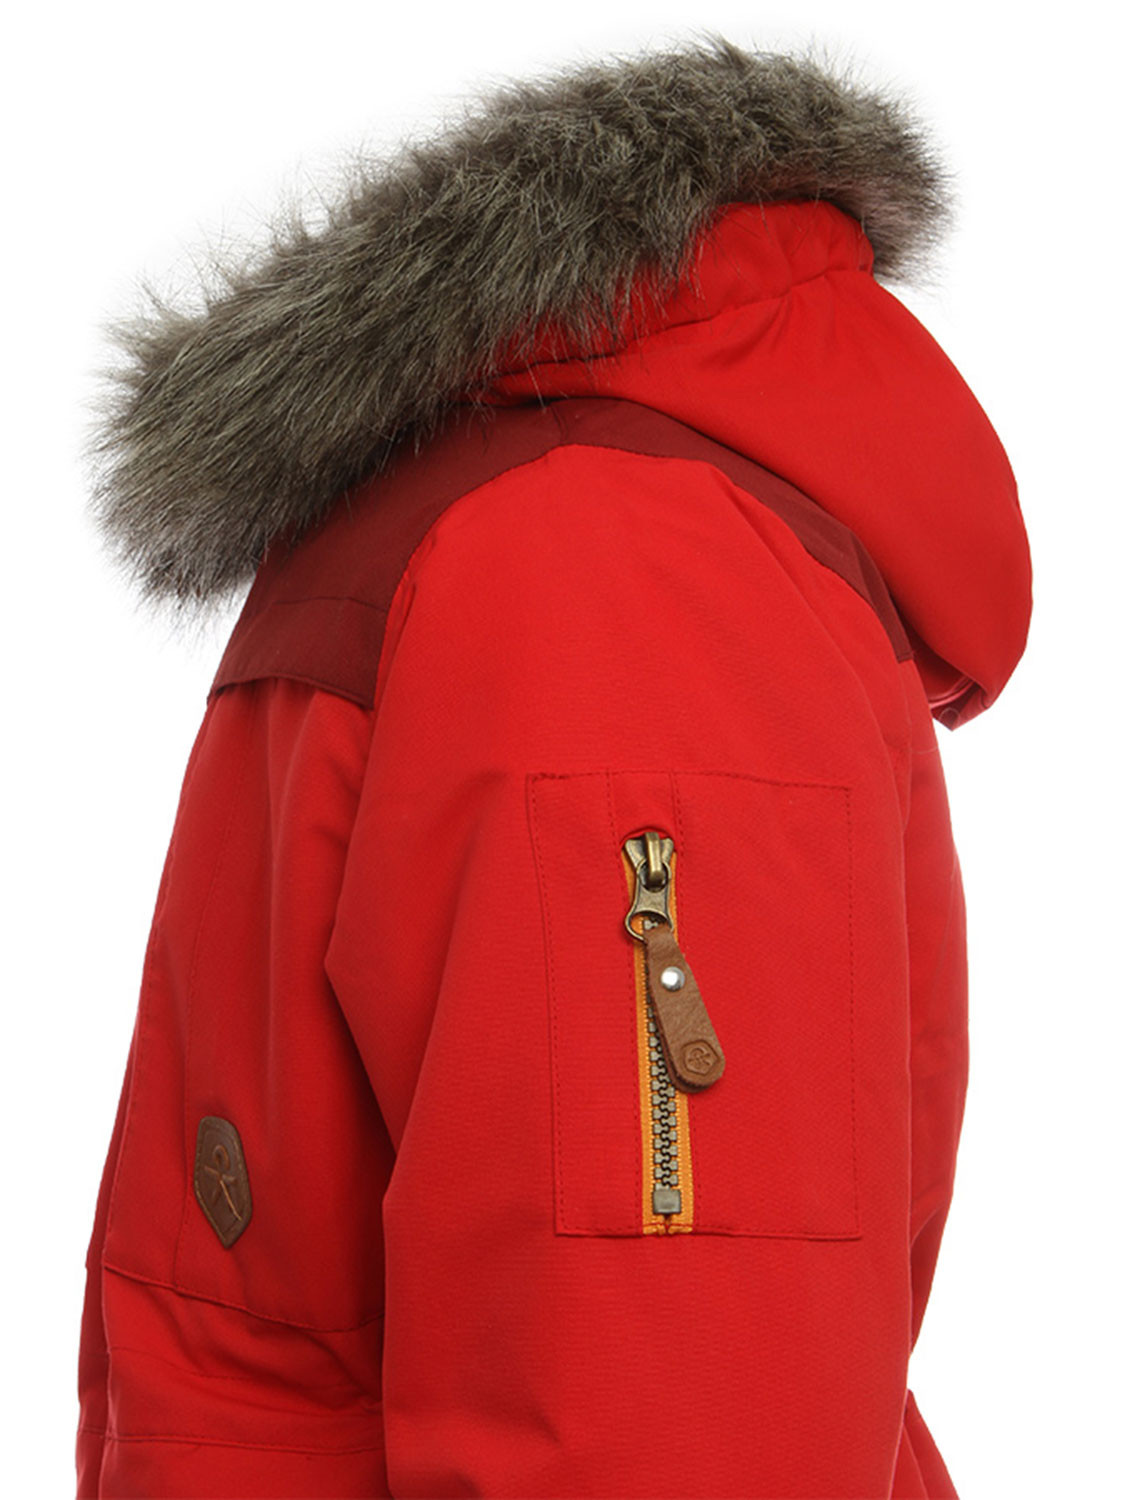 Color Kids Sakata Parka Coat Red Winter Parker Jacket New Kids ...